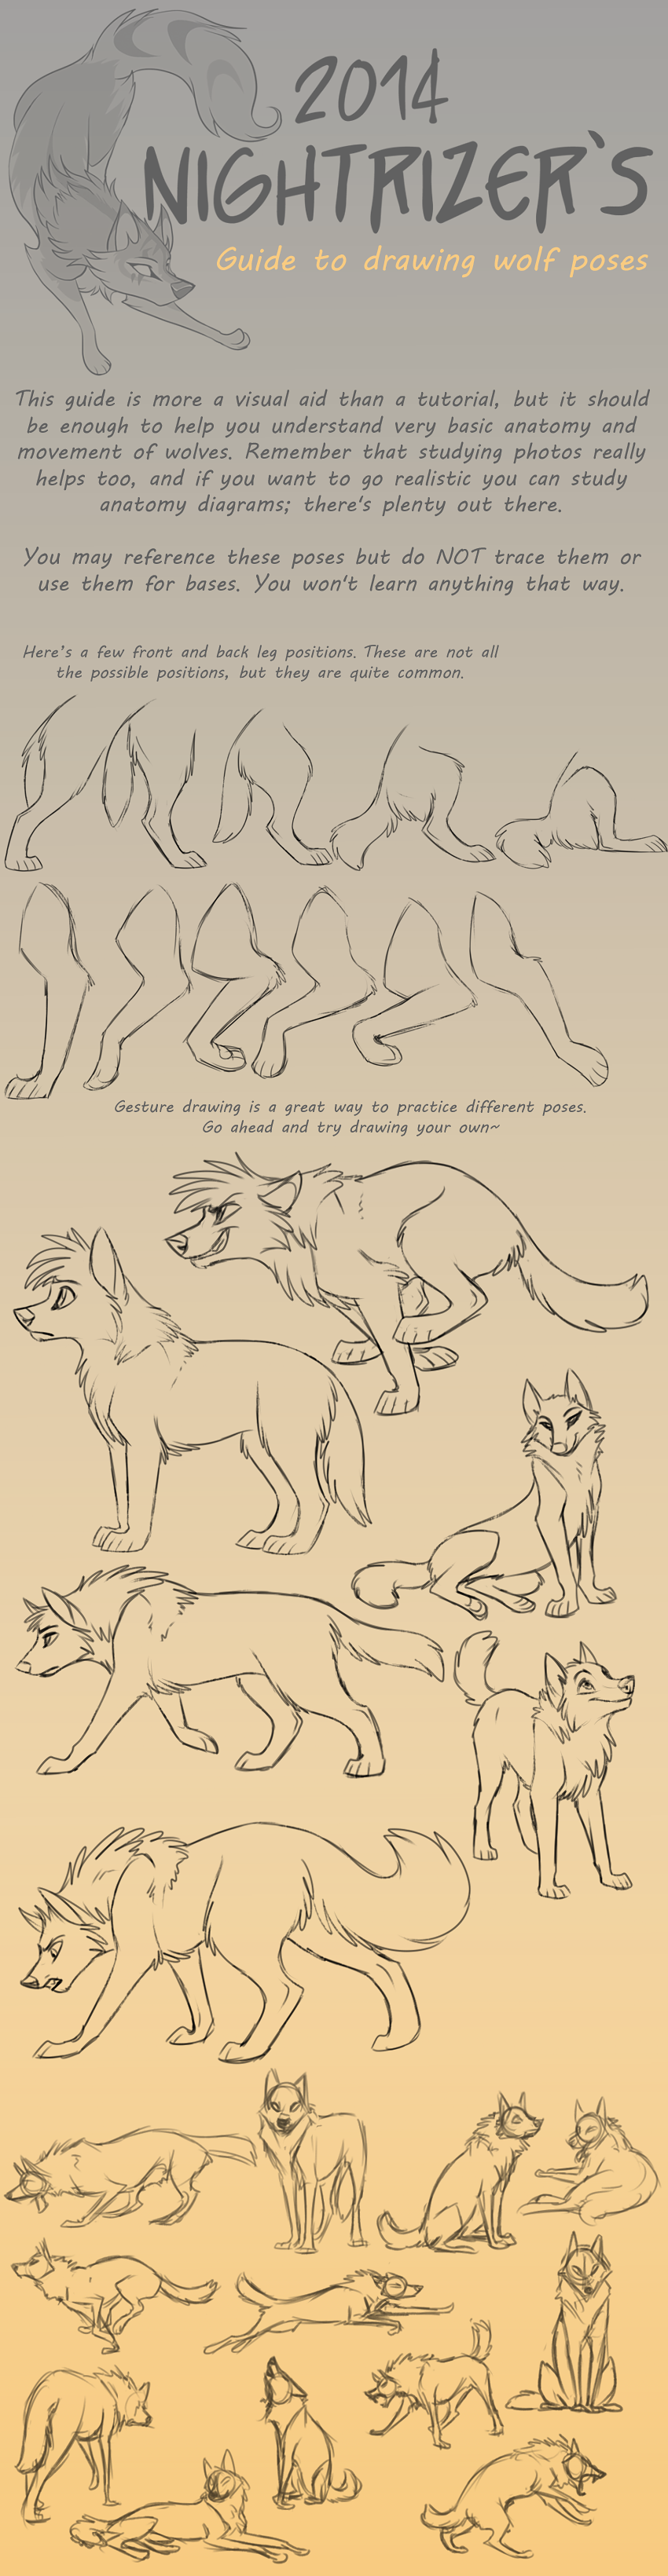 Photo of Guide to Drawing Wolf Poses by Nightrizer on DeviantArt